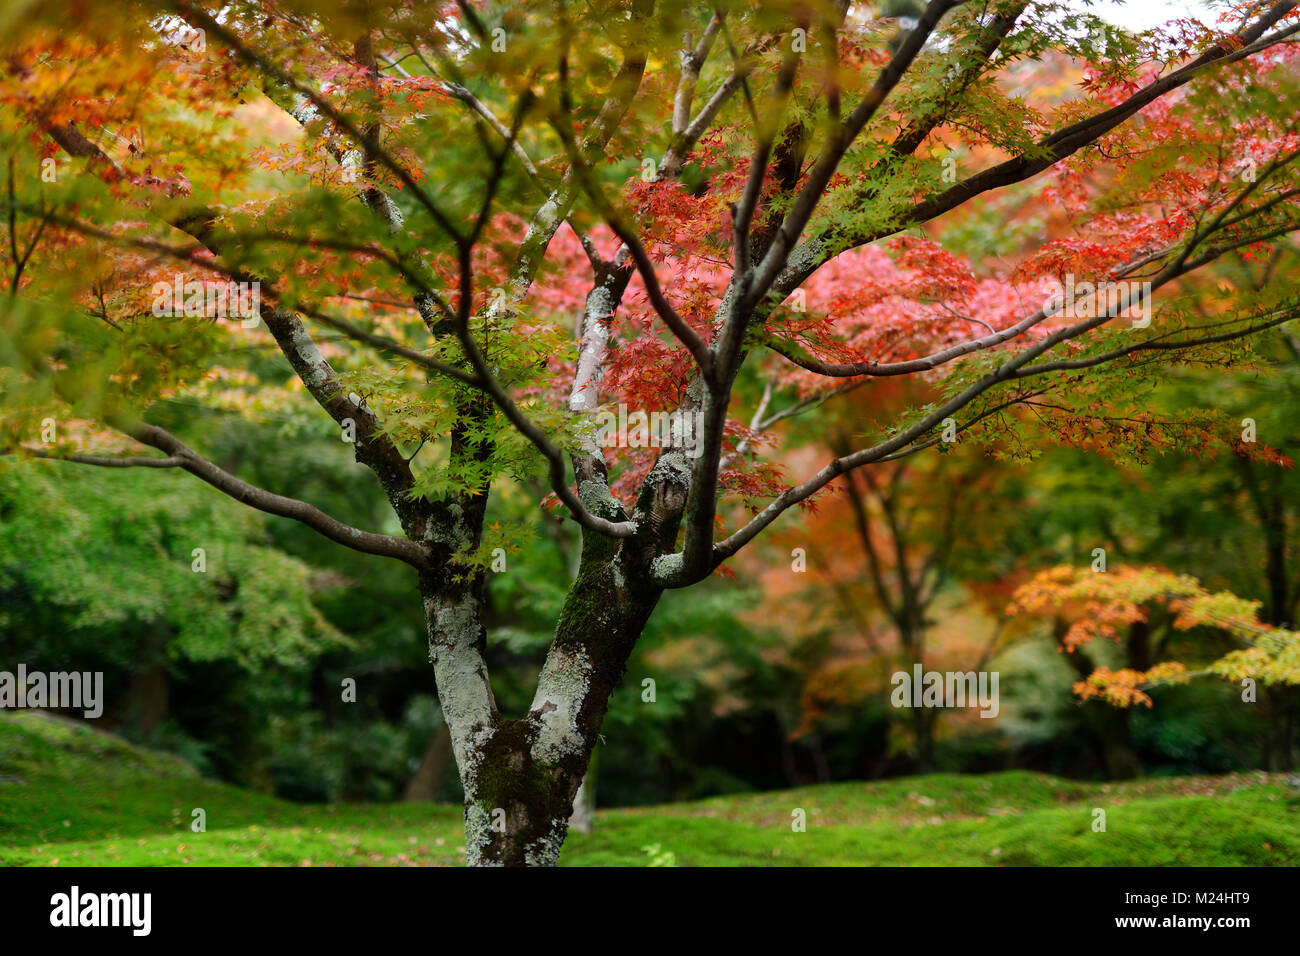 Japanese Maple Tree Stock Photos Japanese Maple Tree Stock Images